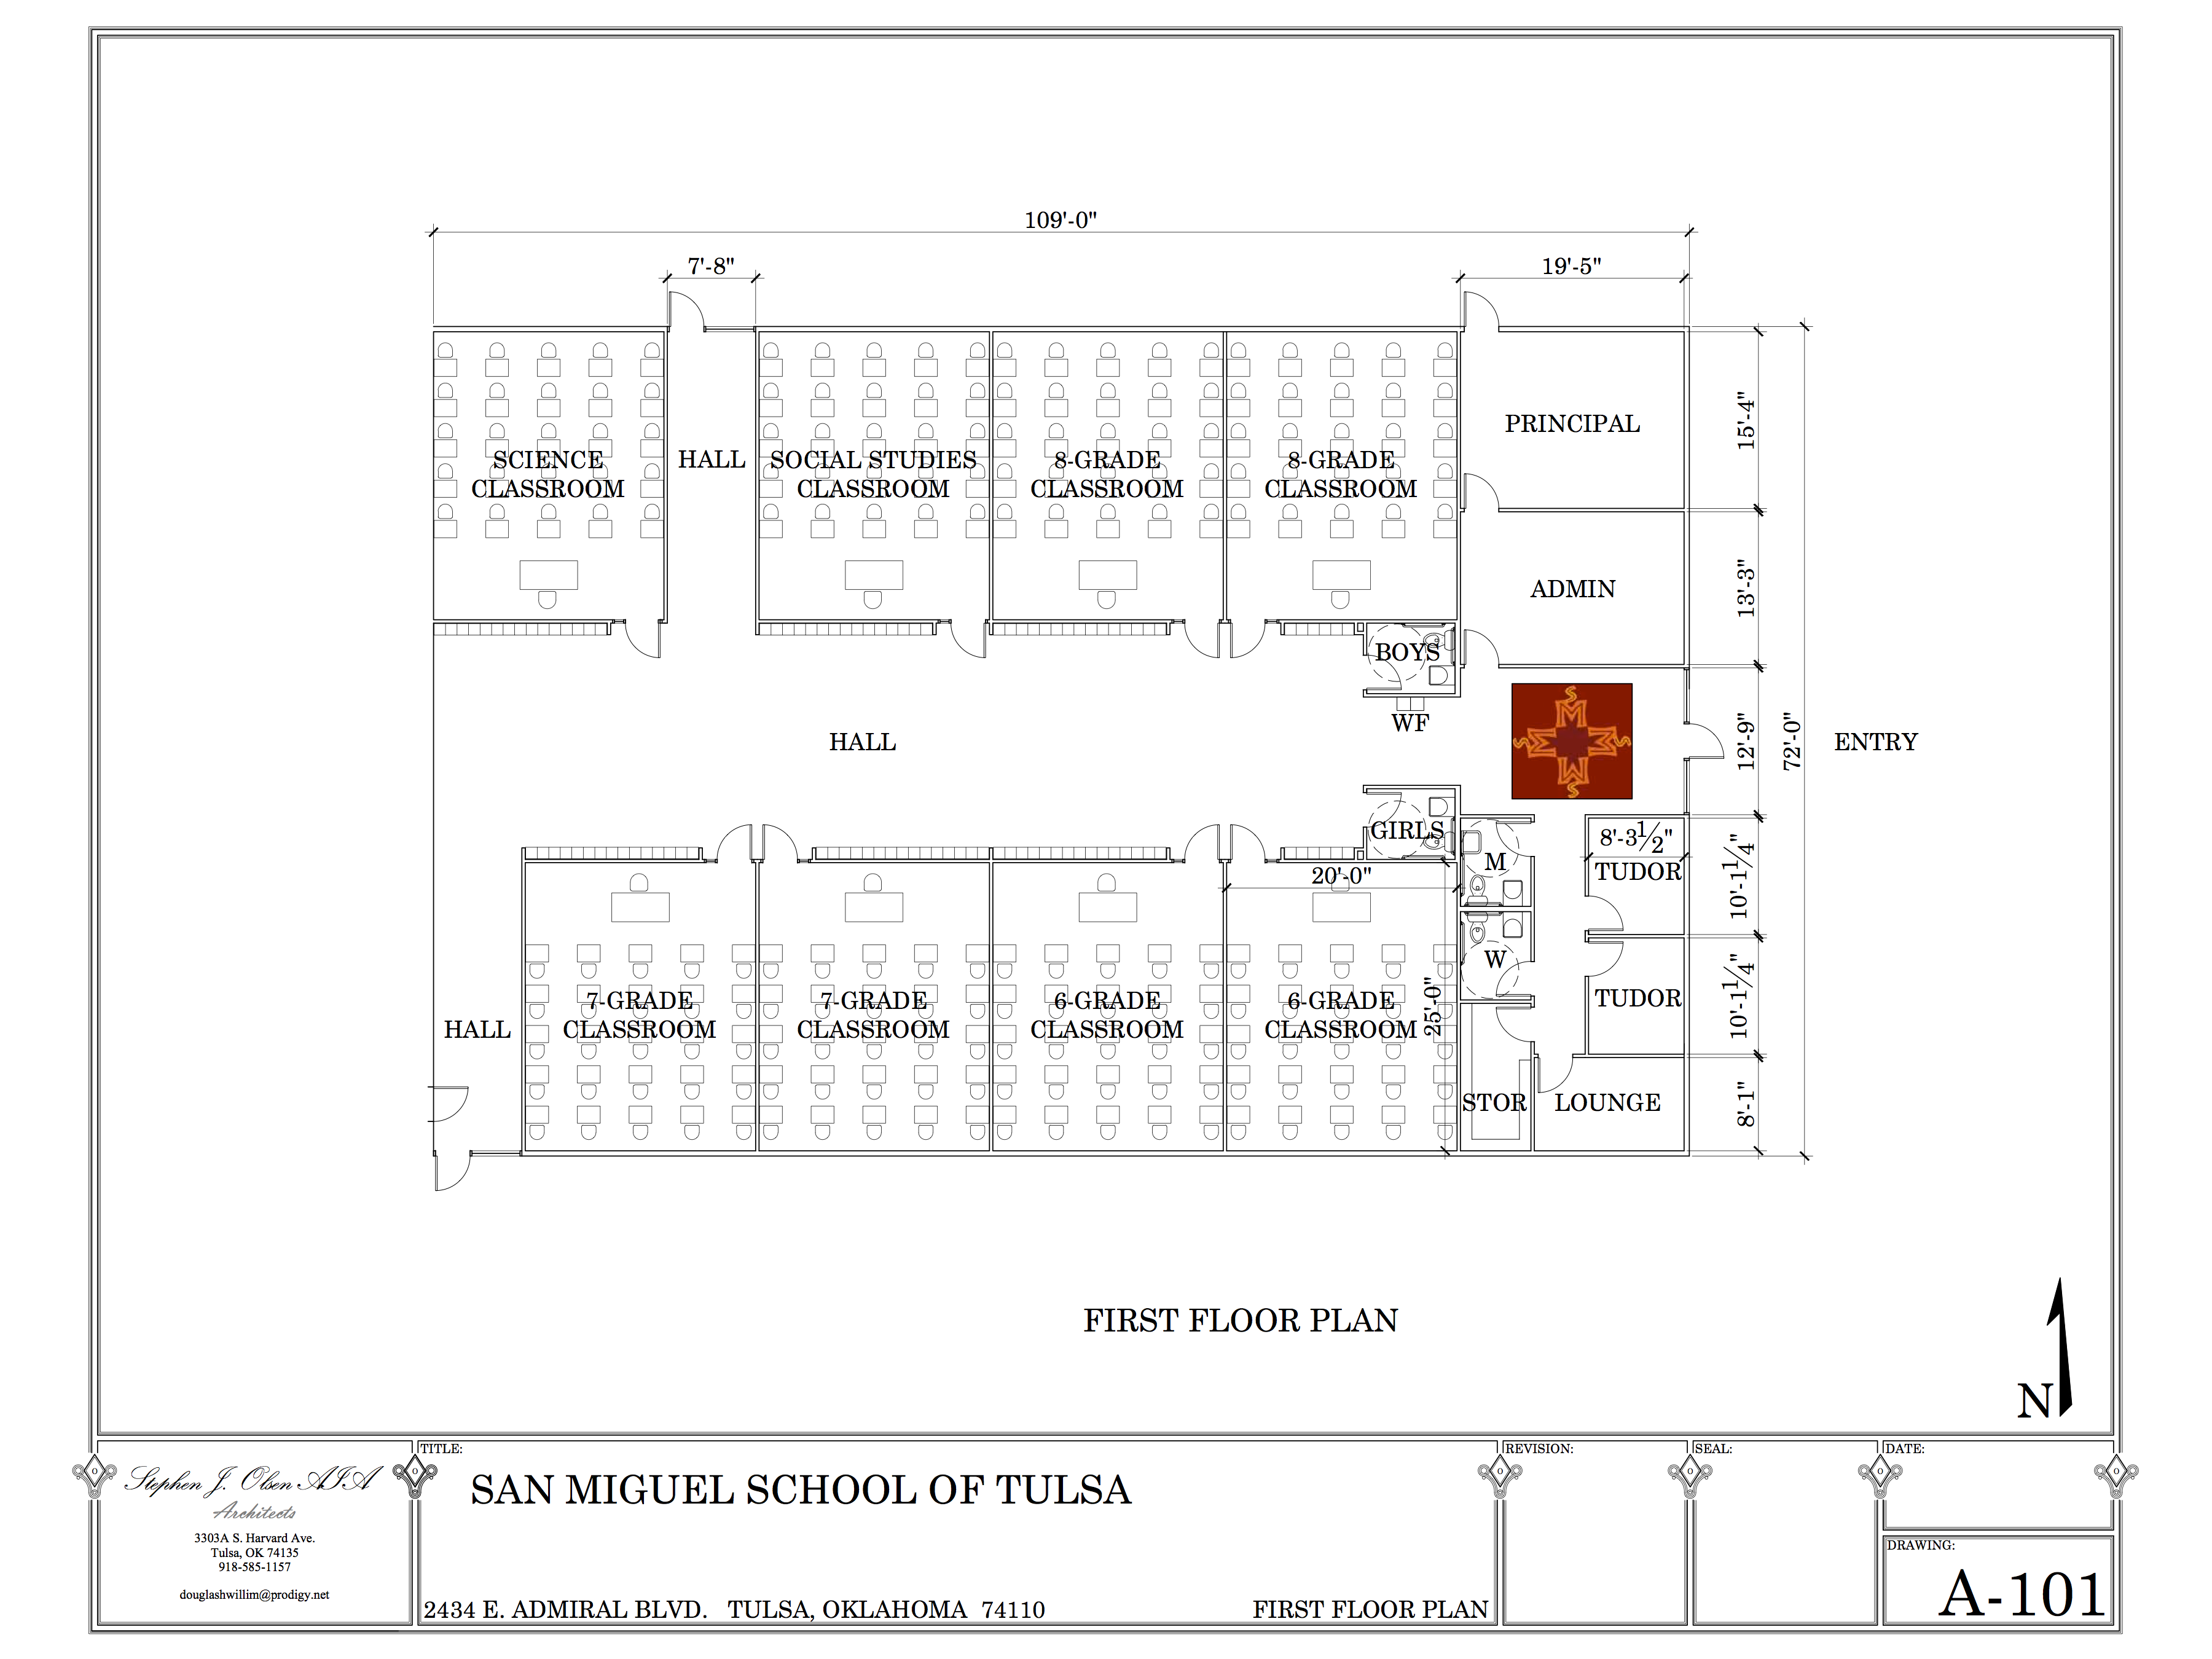 Layout and floorplan for the new building